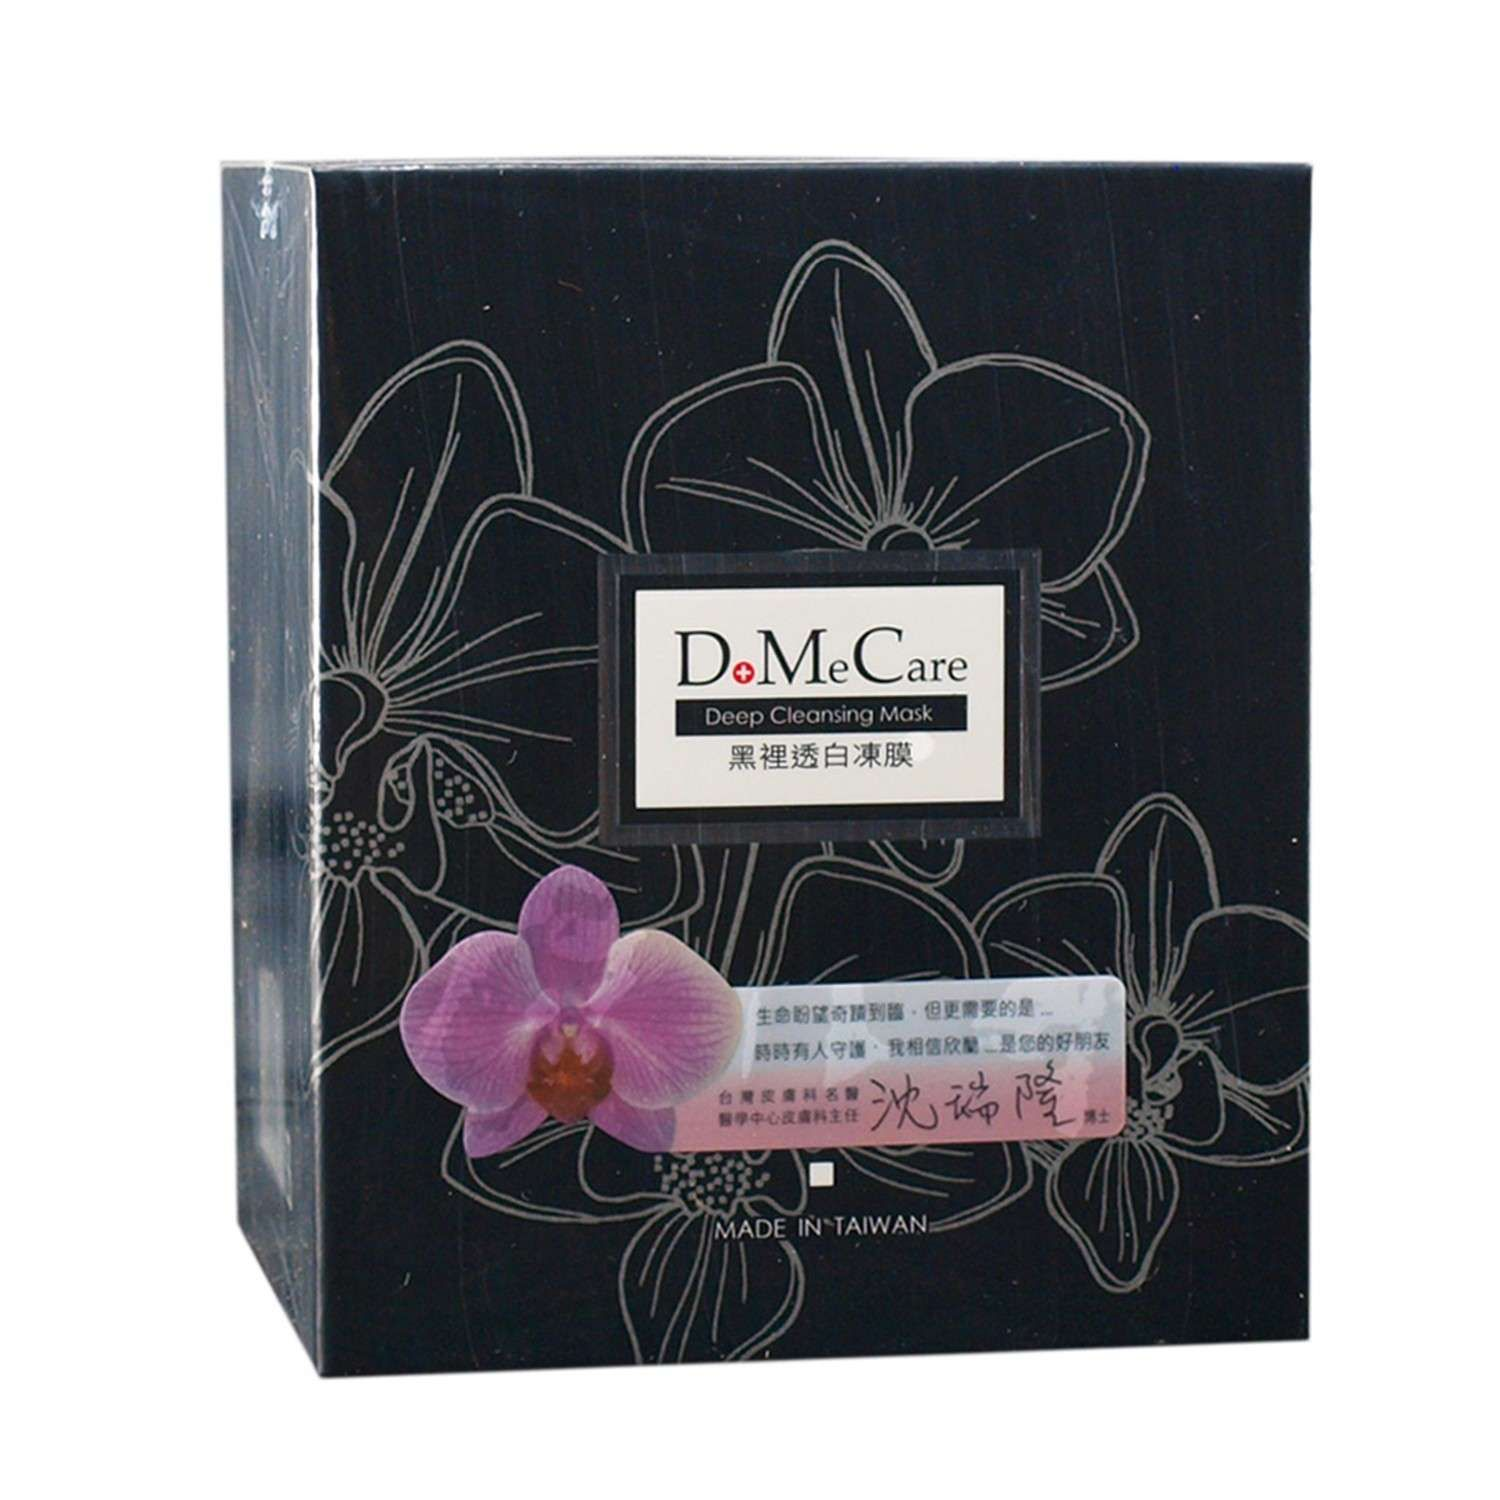 Buy DMC(do me care) Deep Cleansing Mask (500 g)